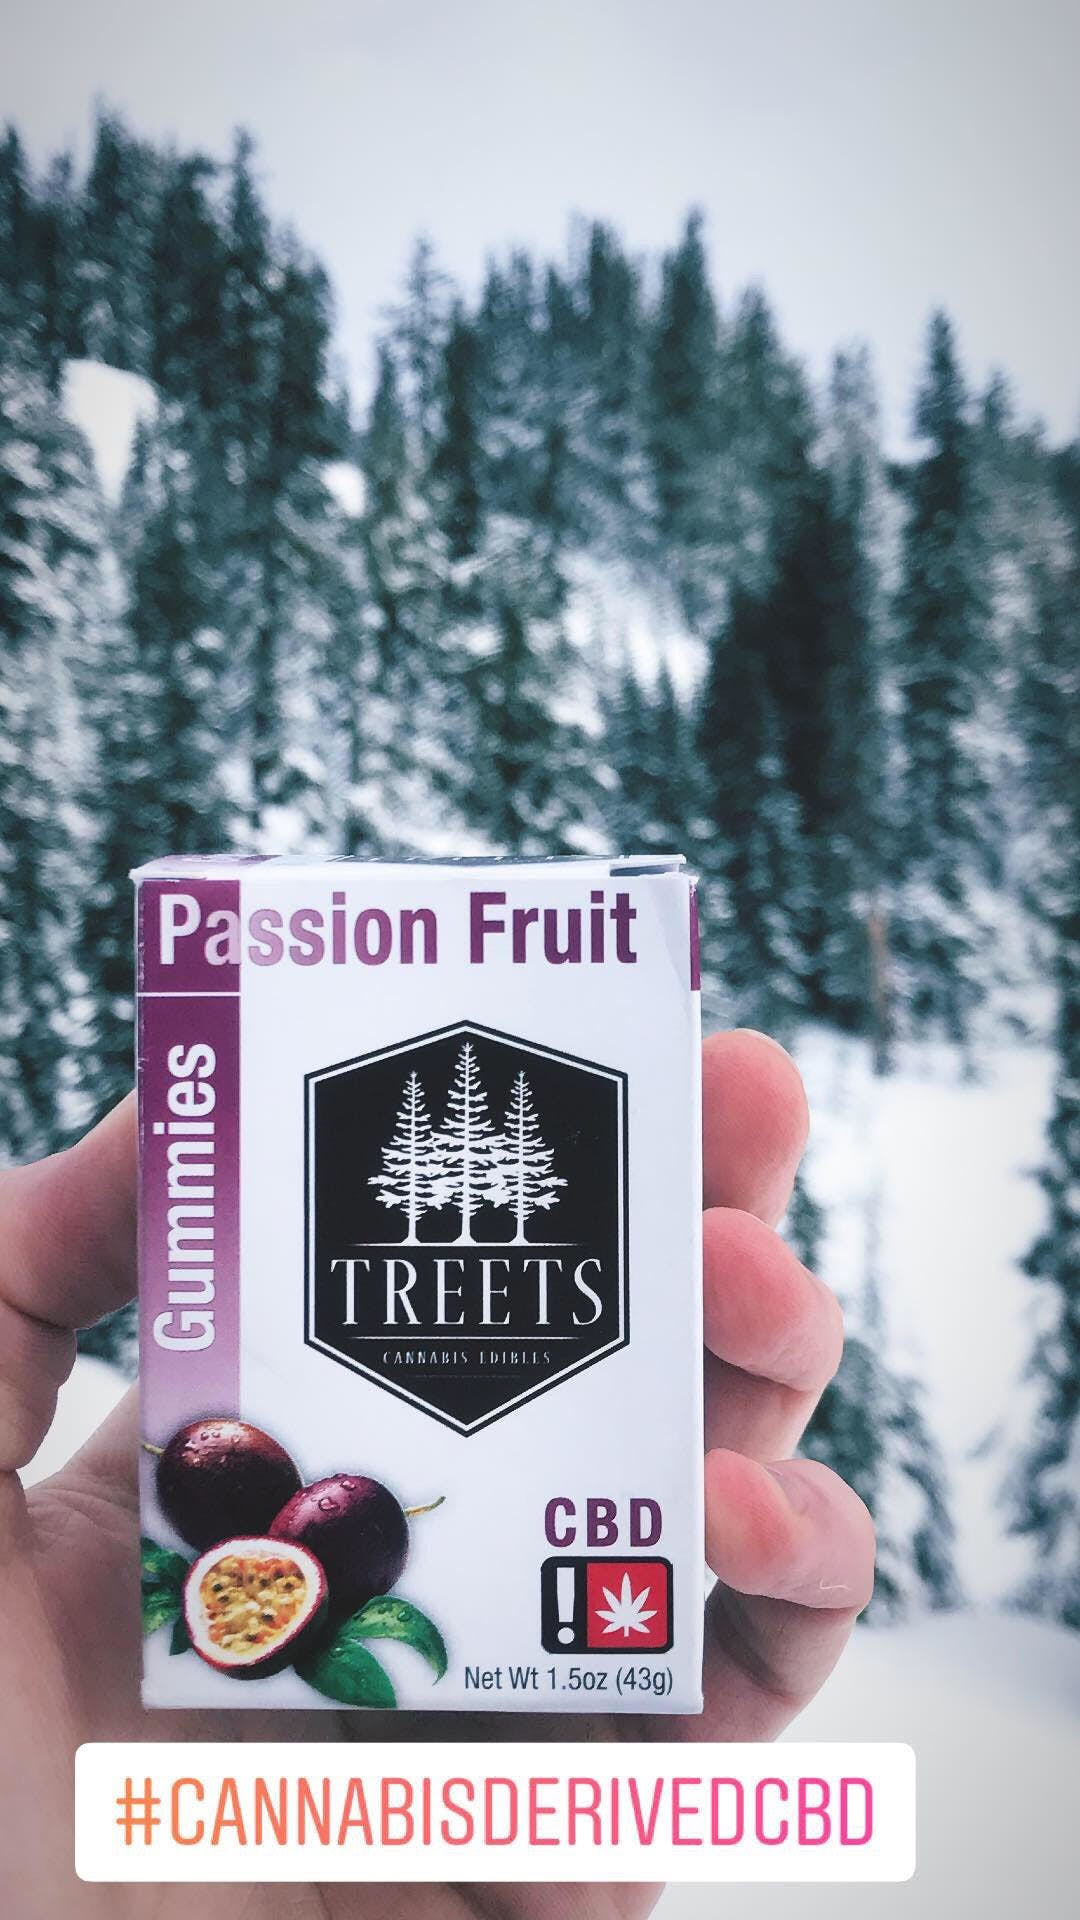 marijuana-dispensaries-caspers-cannabis-club-in-eugene-passion-fruit-cbd-gummies